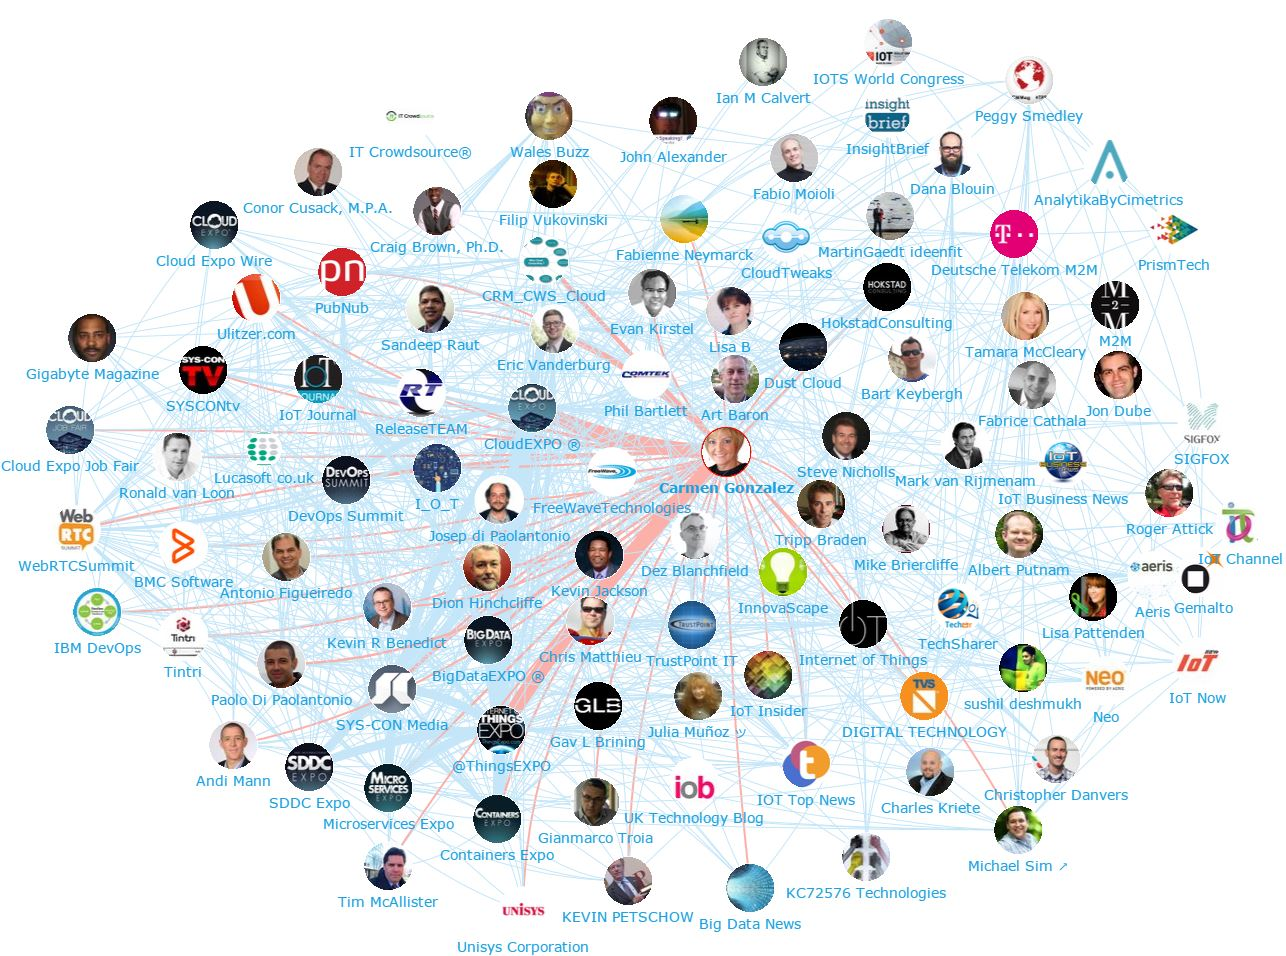 Onalytica M2M Top 100 Influencers and Brands - Network Map - Carmen Gonzalez